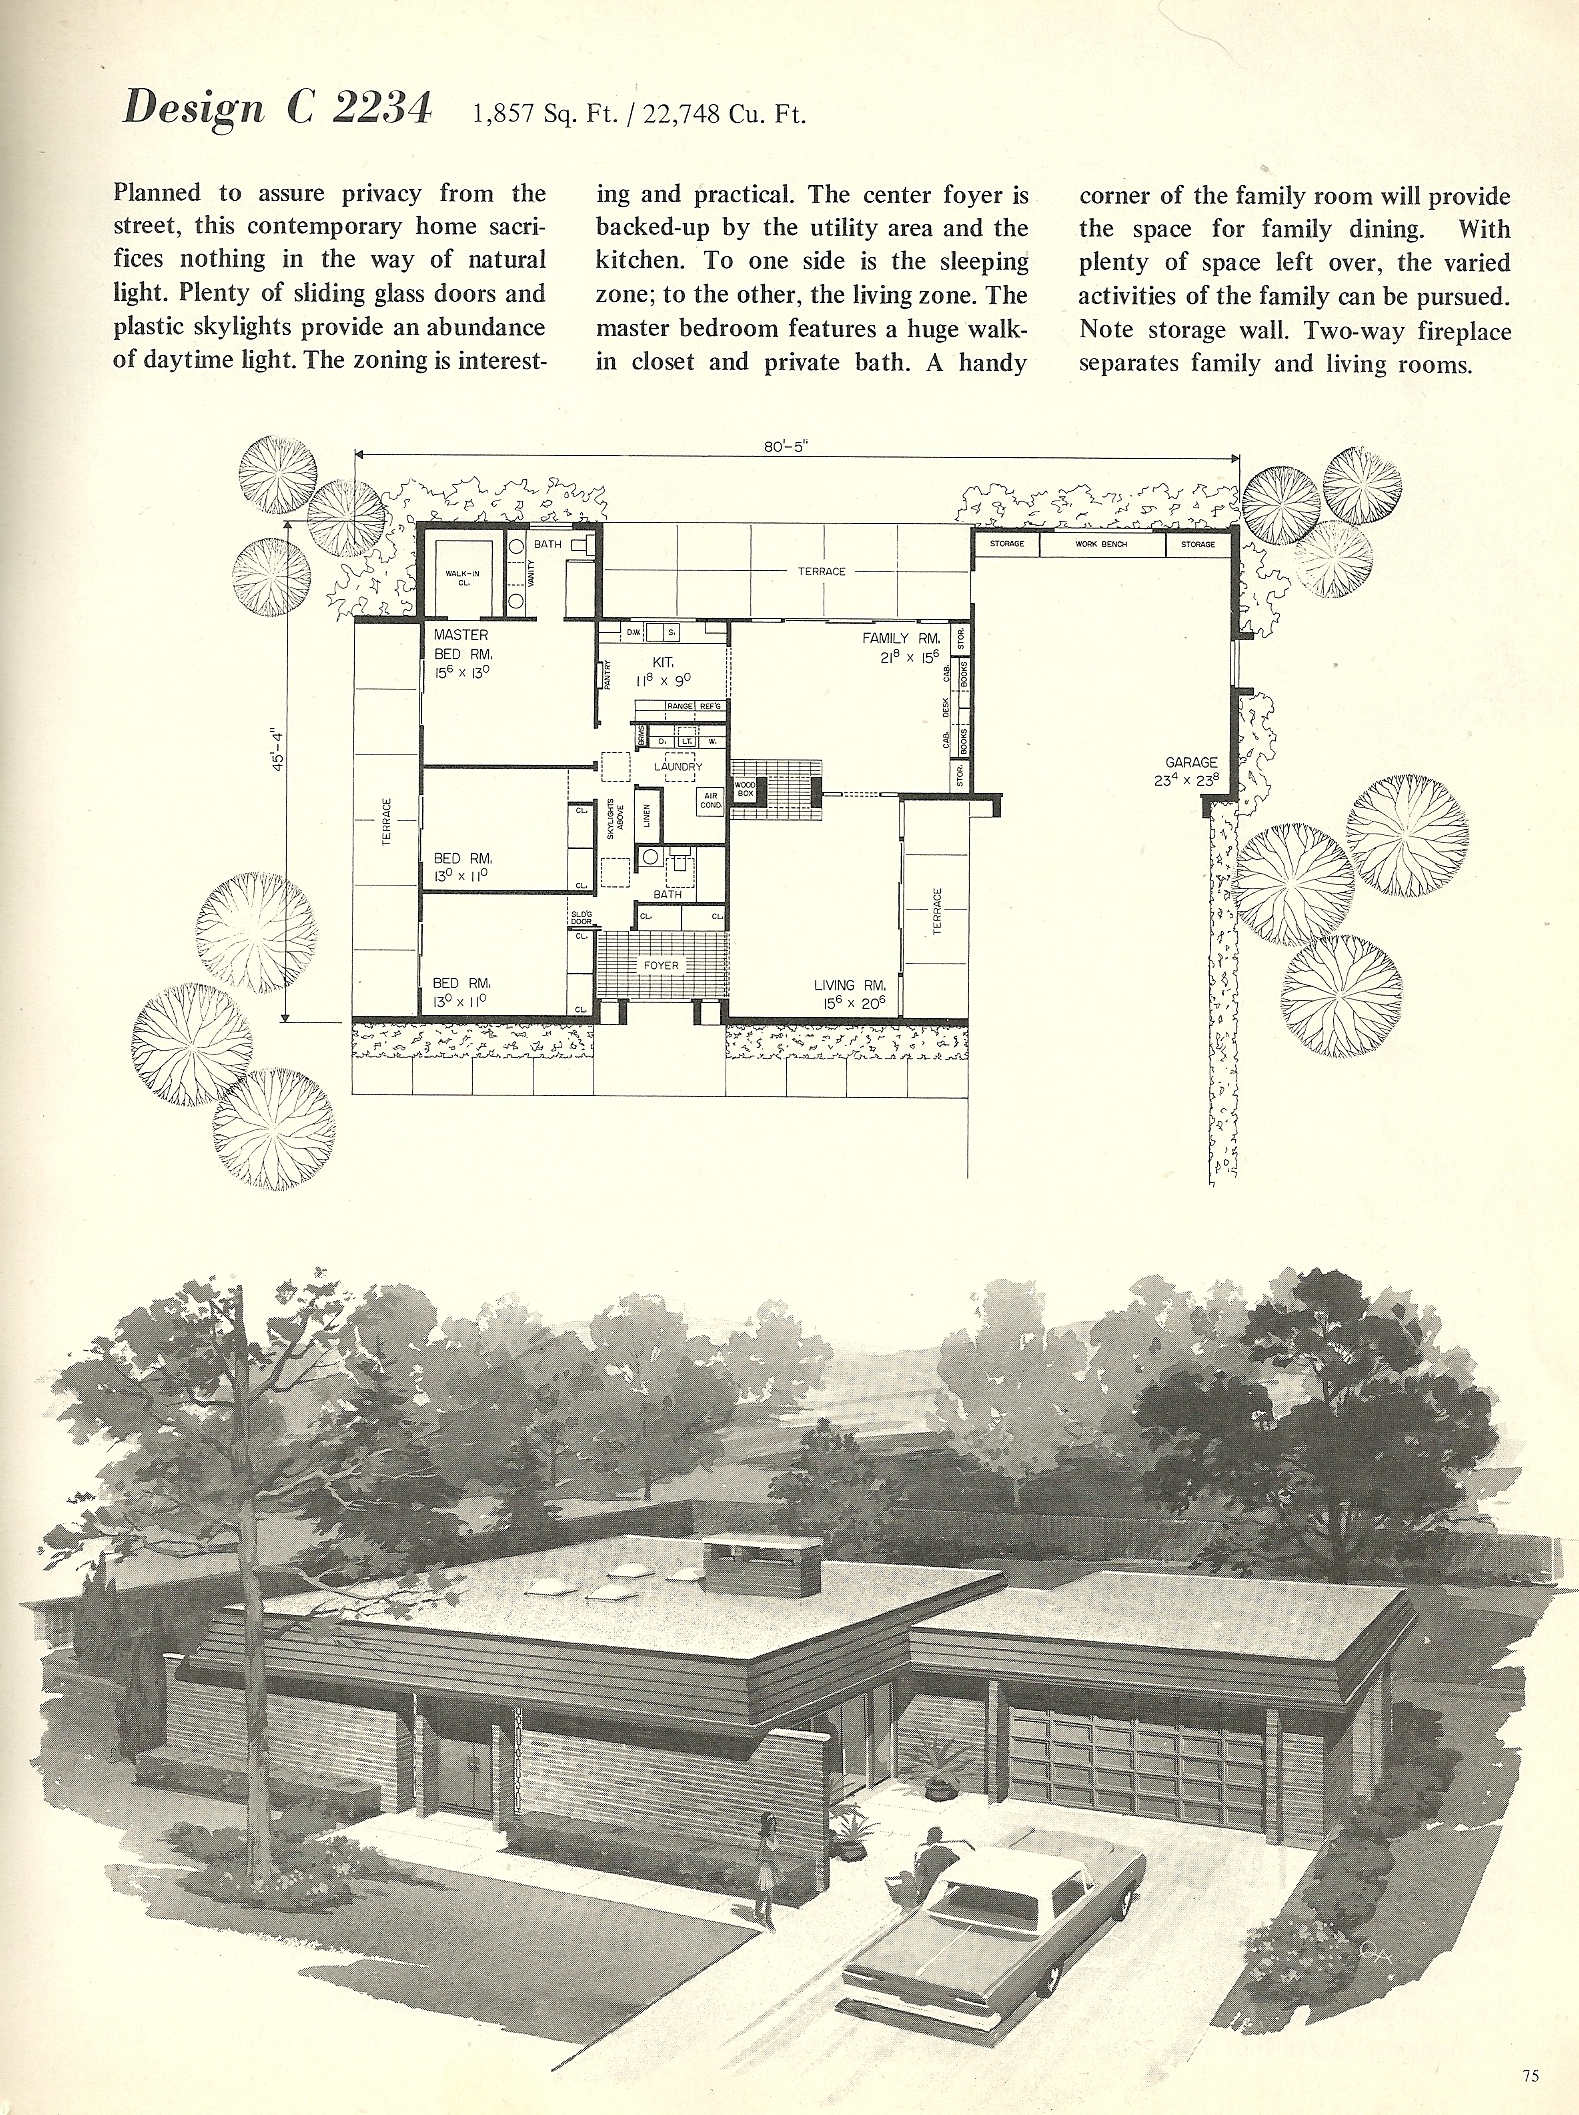 Vintage house plans 2234 antique alter ego for Mid century home plans